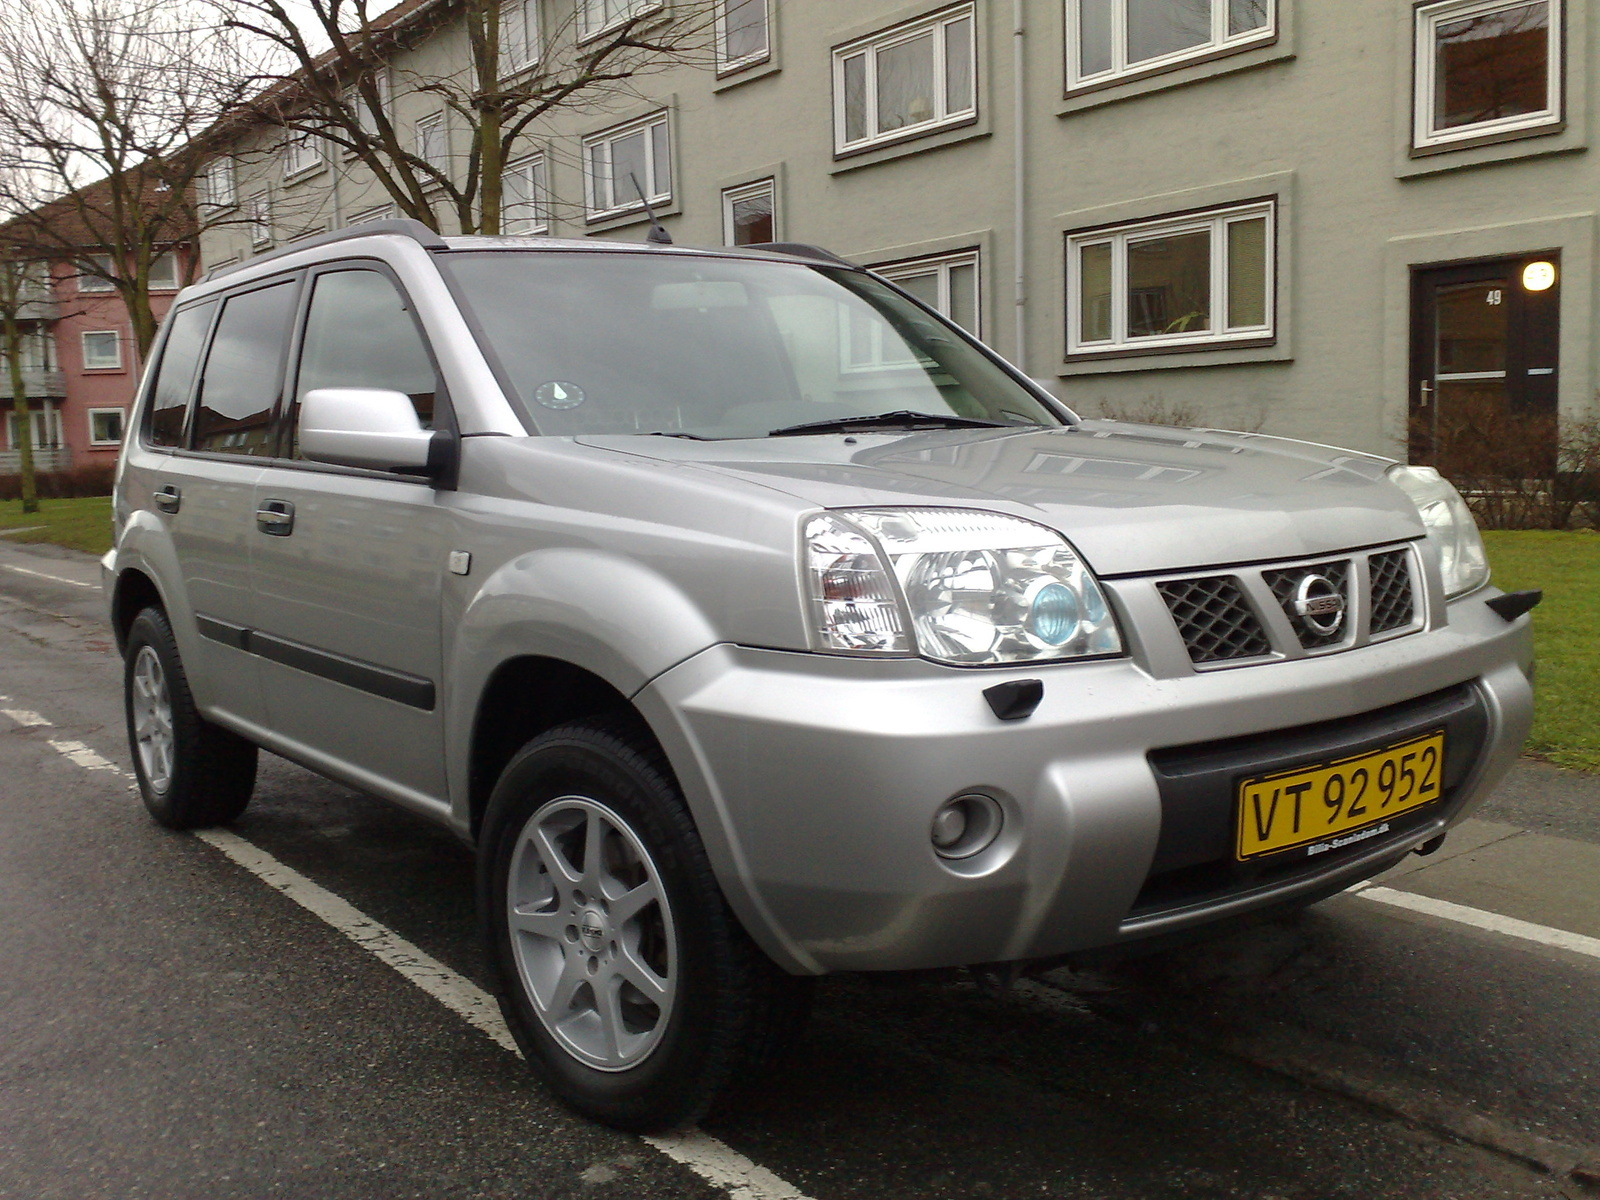 2004 Nissan X-trail - Overview